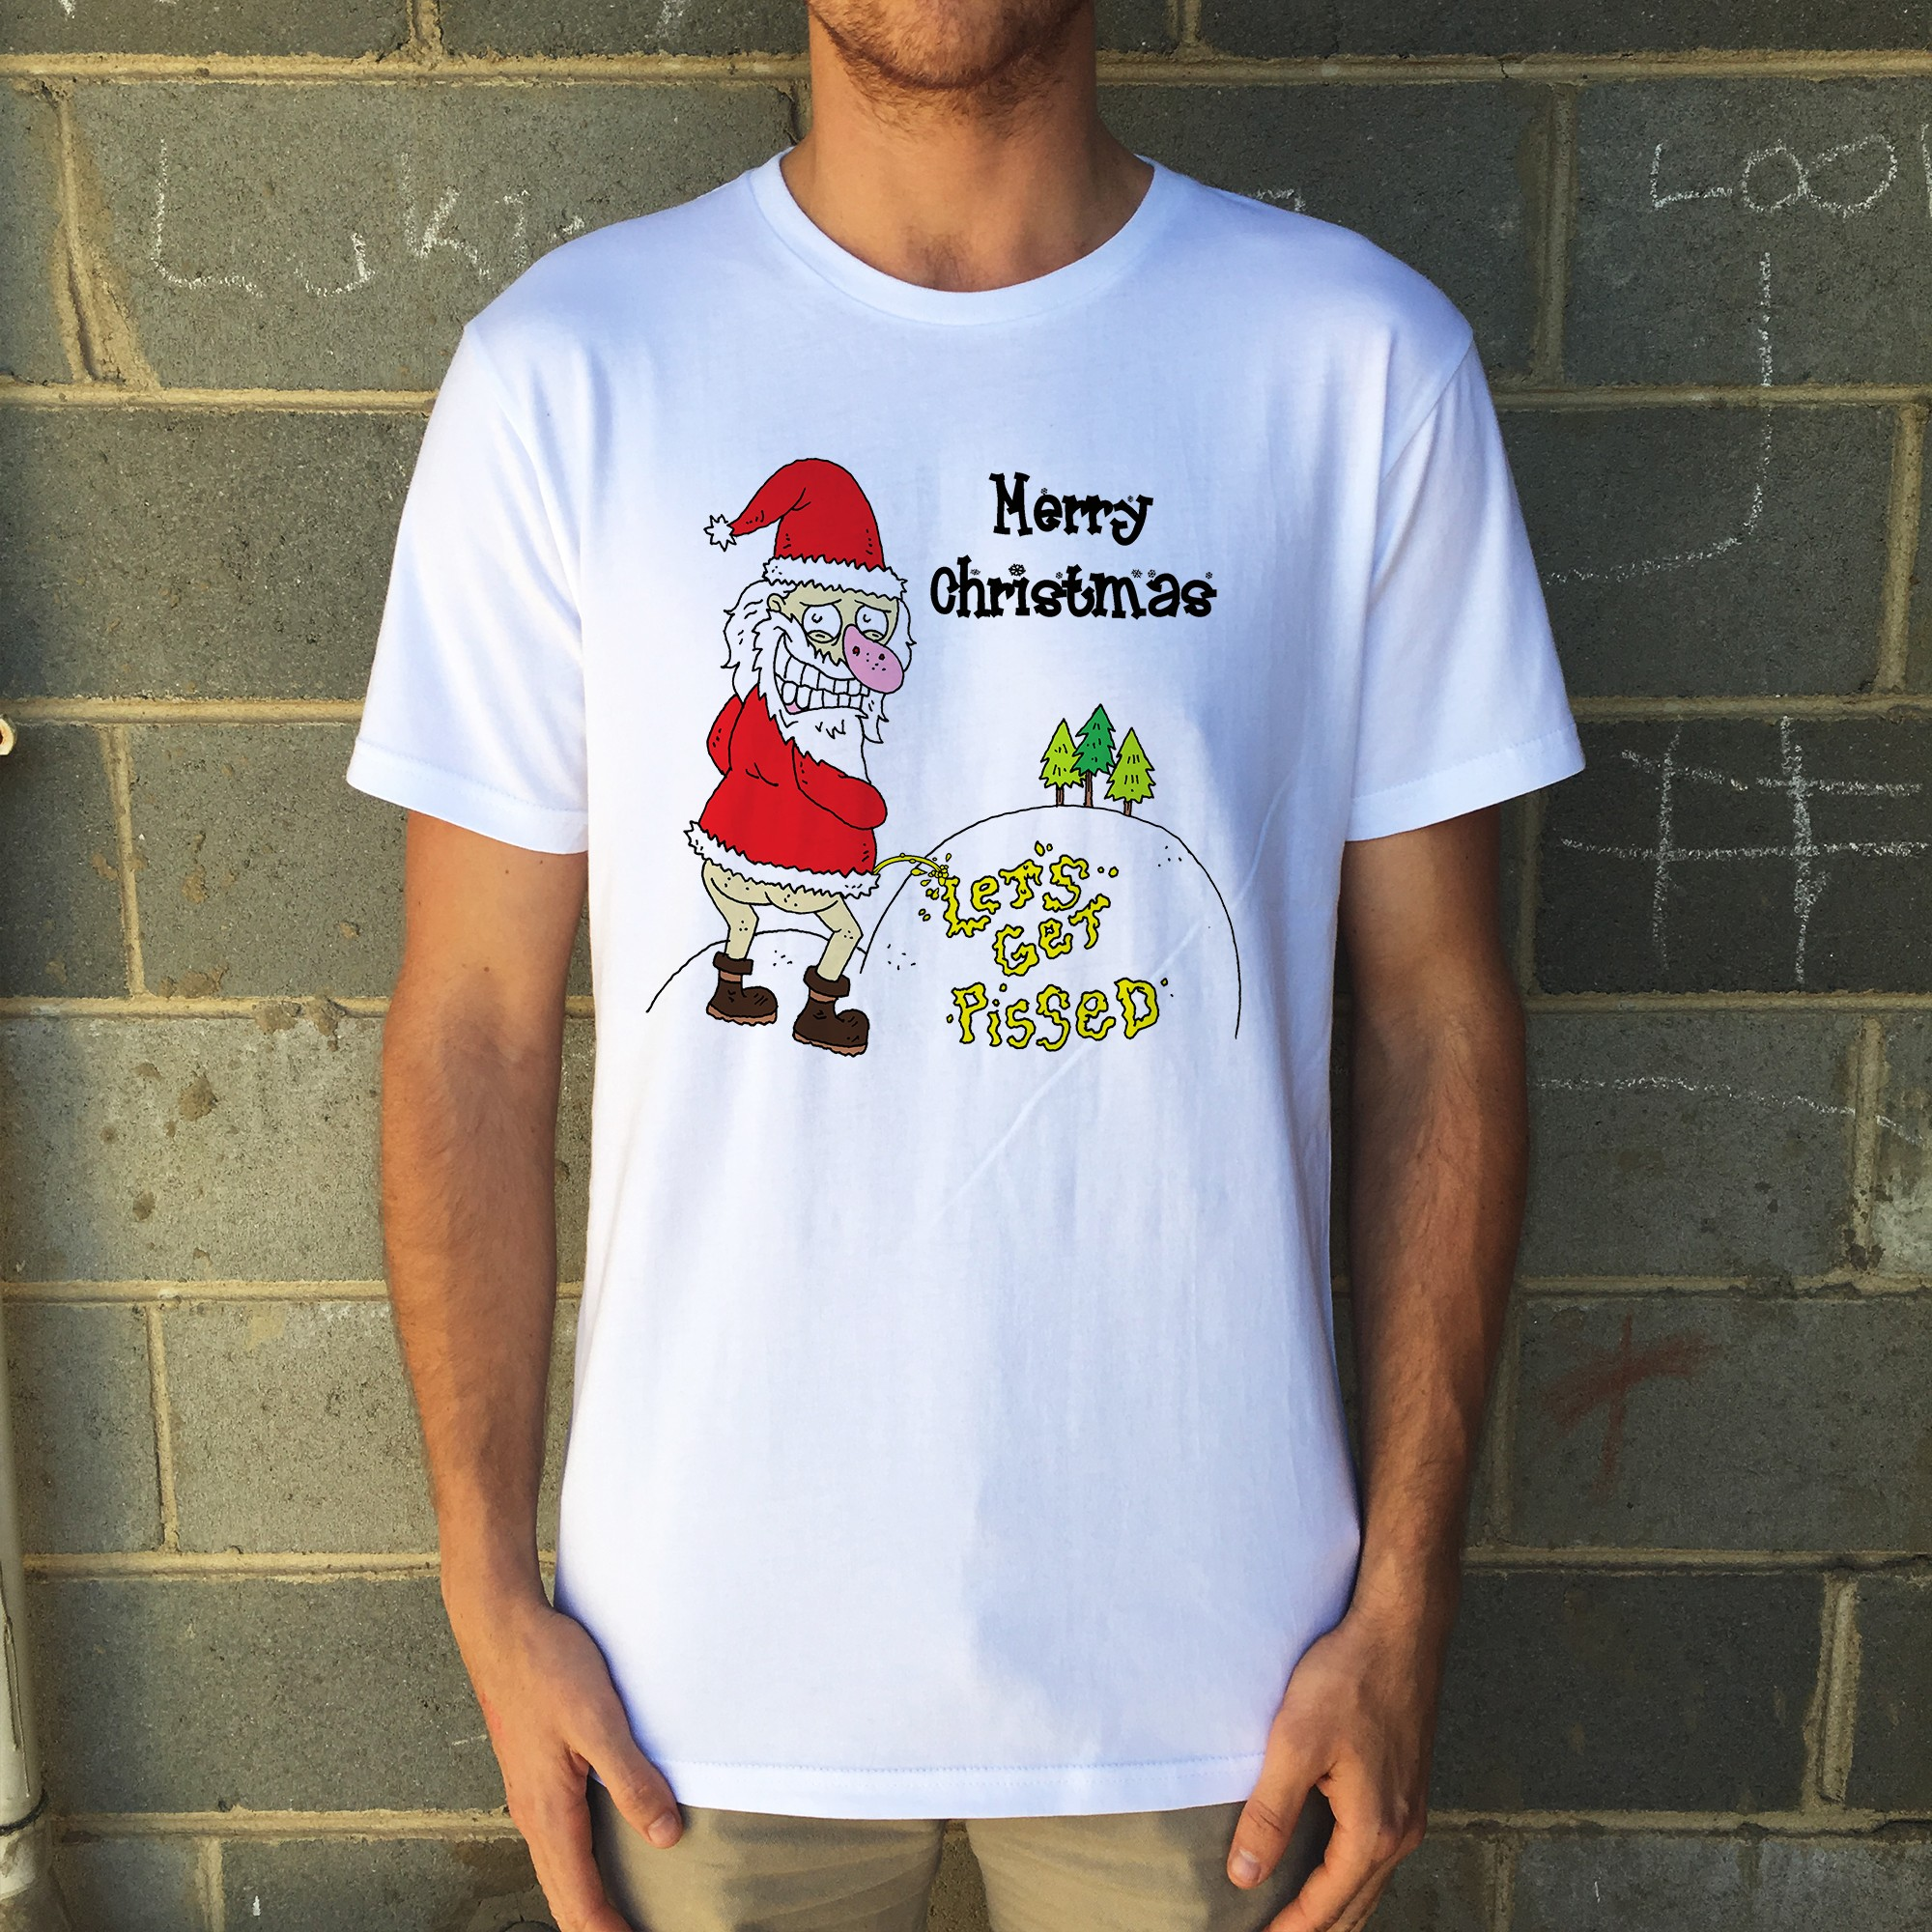 LETS GET PISSED XMAS WHITE TEE